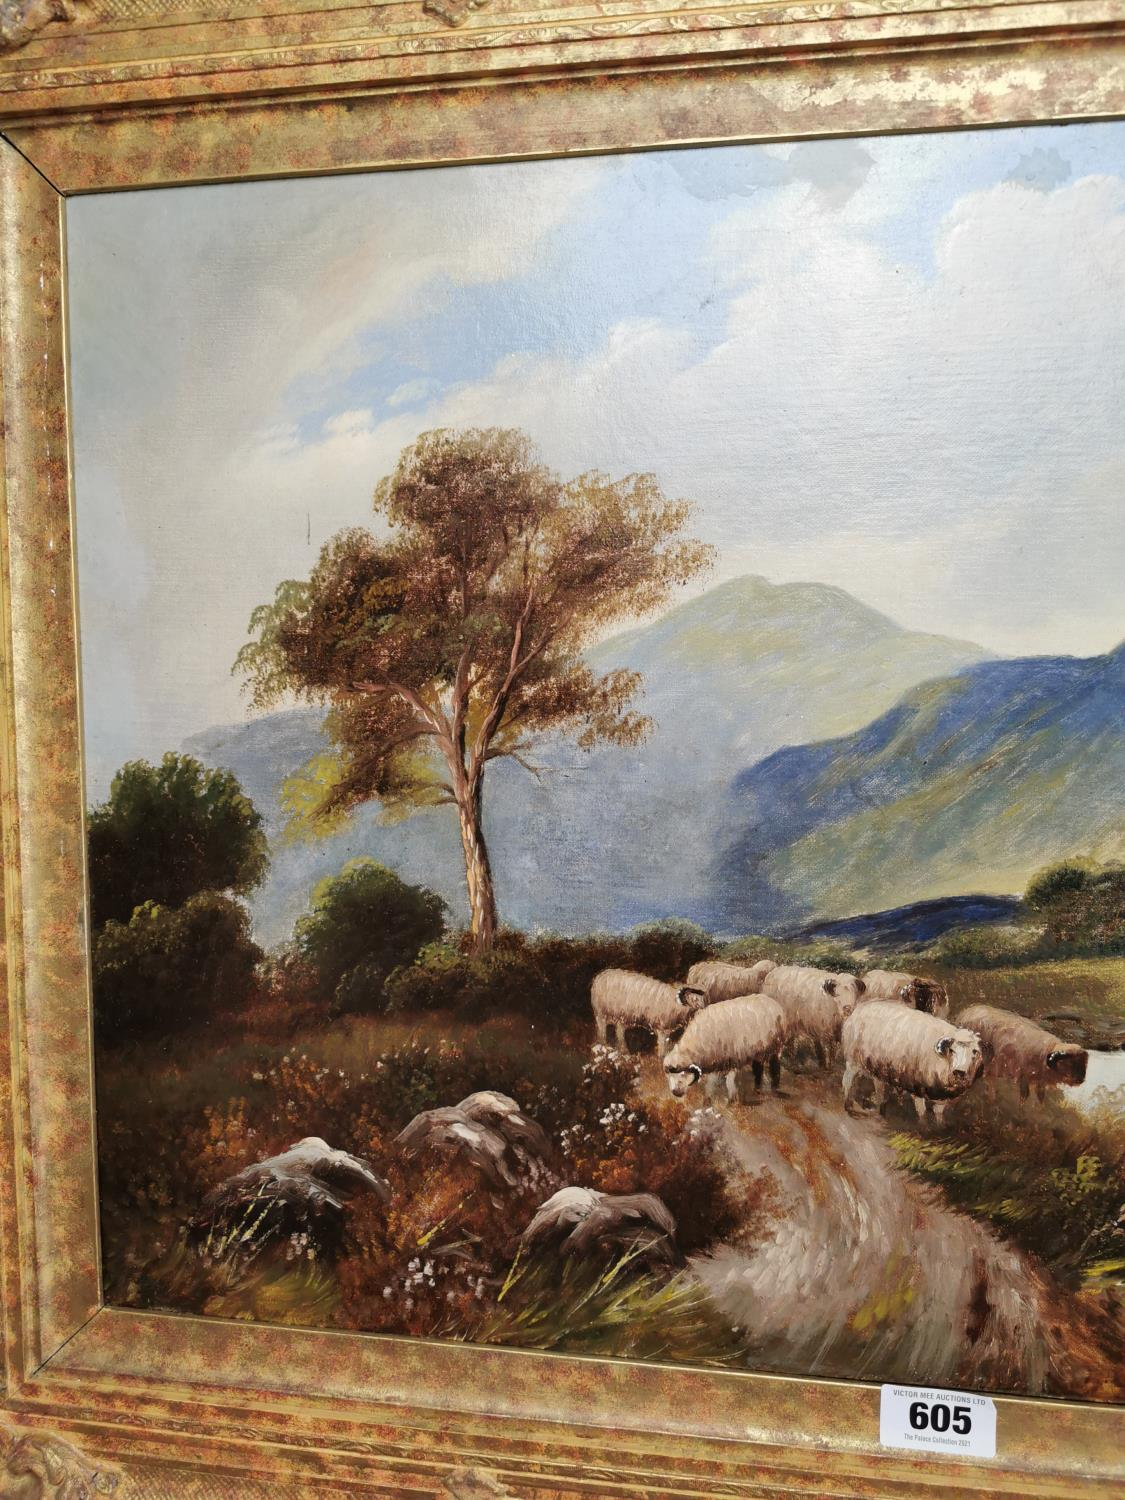 19th C. oil on canvas Mountain and Sheep scene. - Image 3 of 3